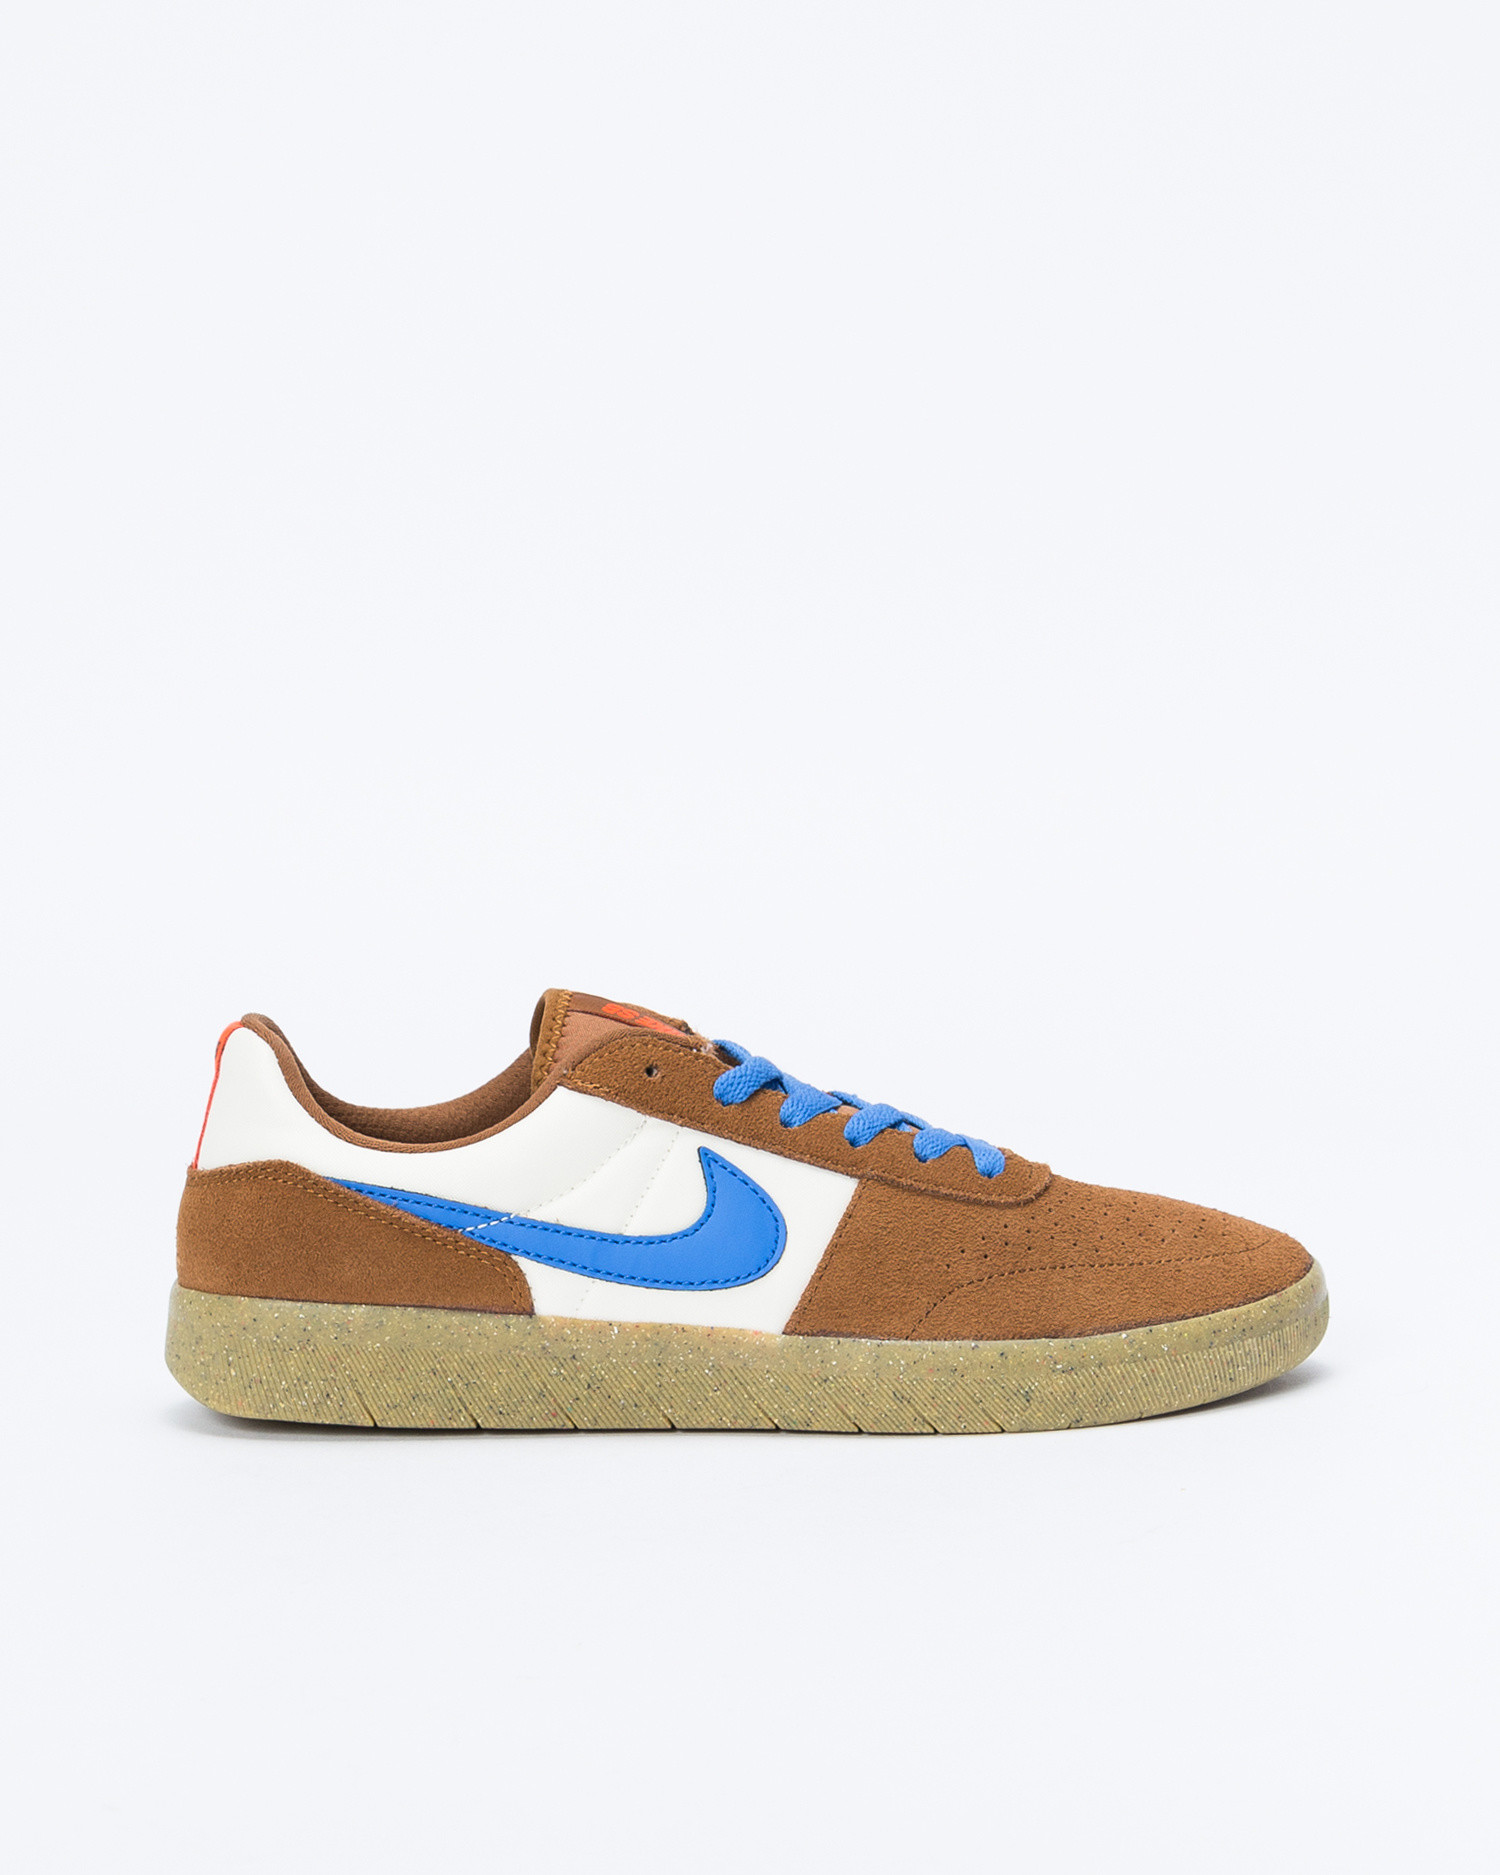 Nike Sb Team Classic Core Perforated Lt British Tan/Pacific Blue-Pale Ivory